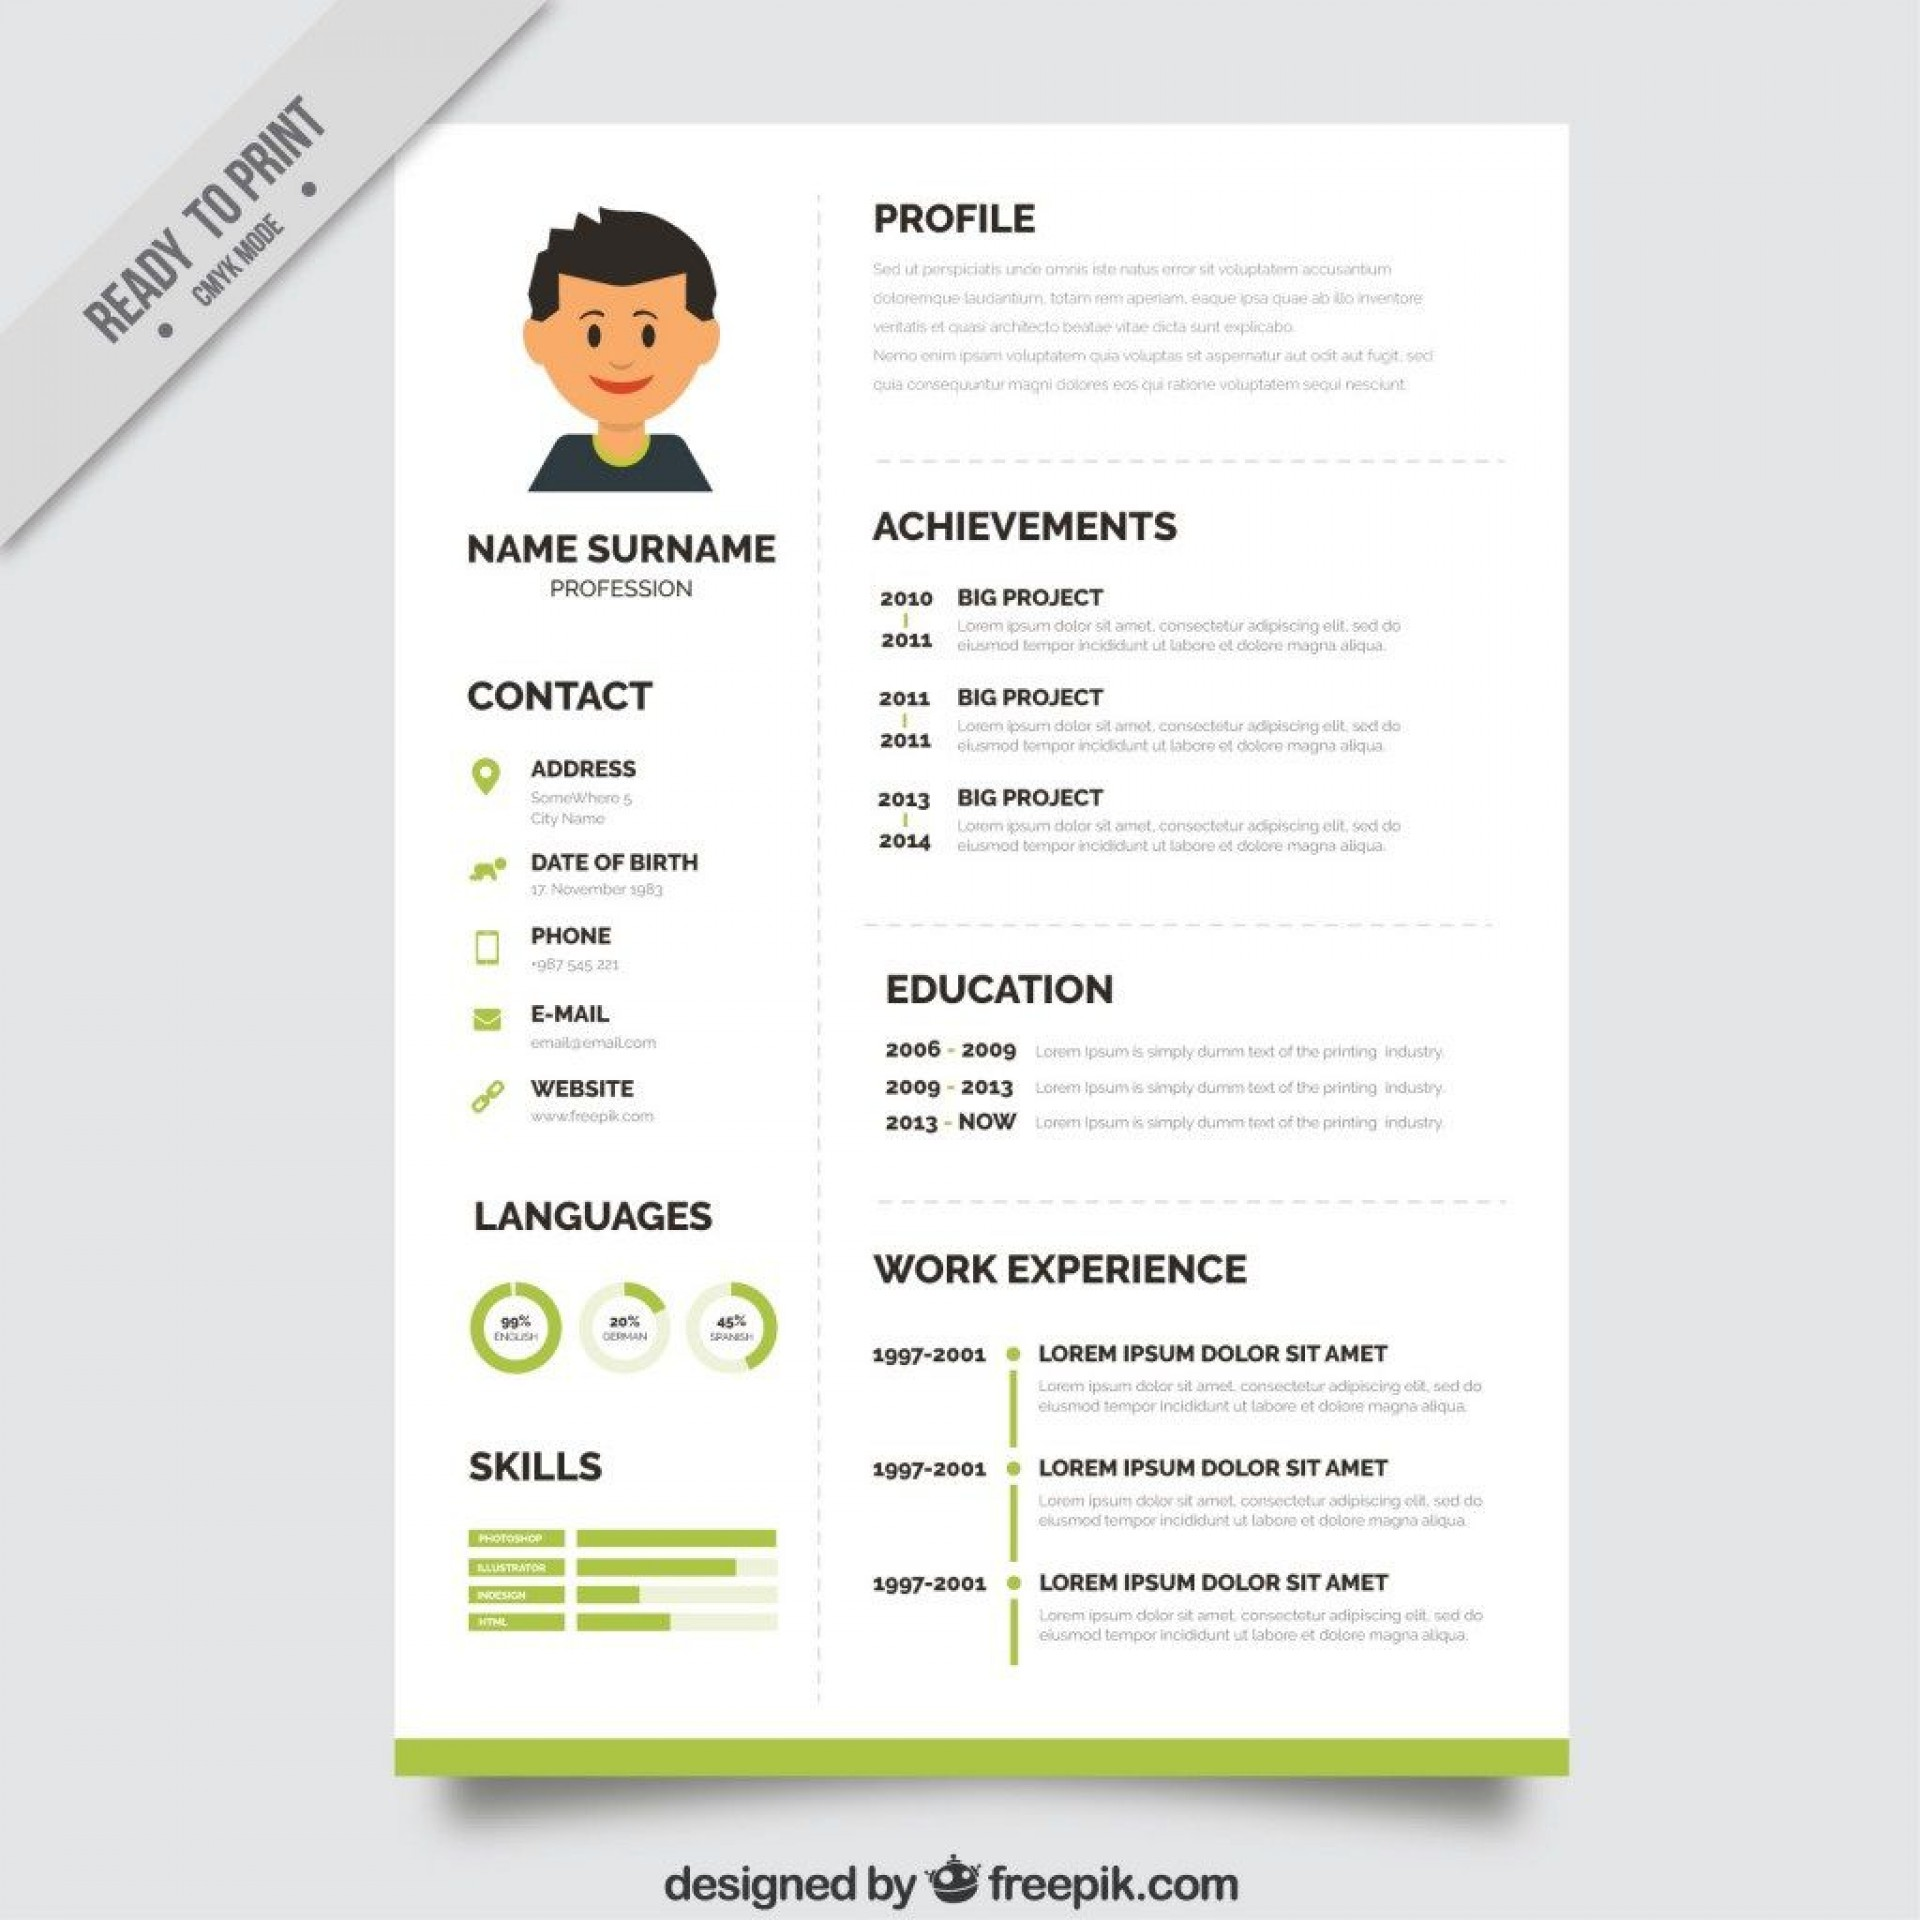 005 Frightening Free Download Resume Template High Def  Templates Word 2019 Pdf 20201920